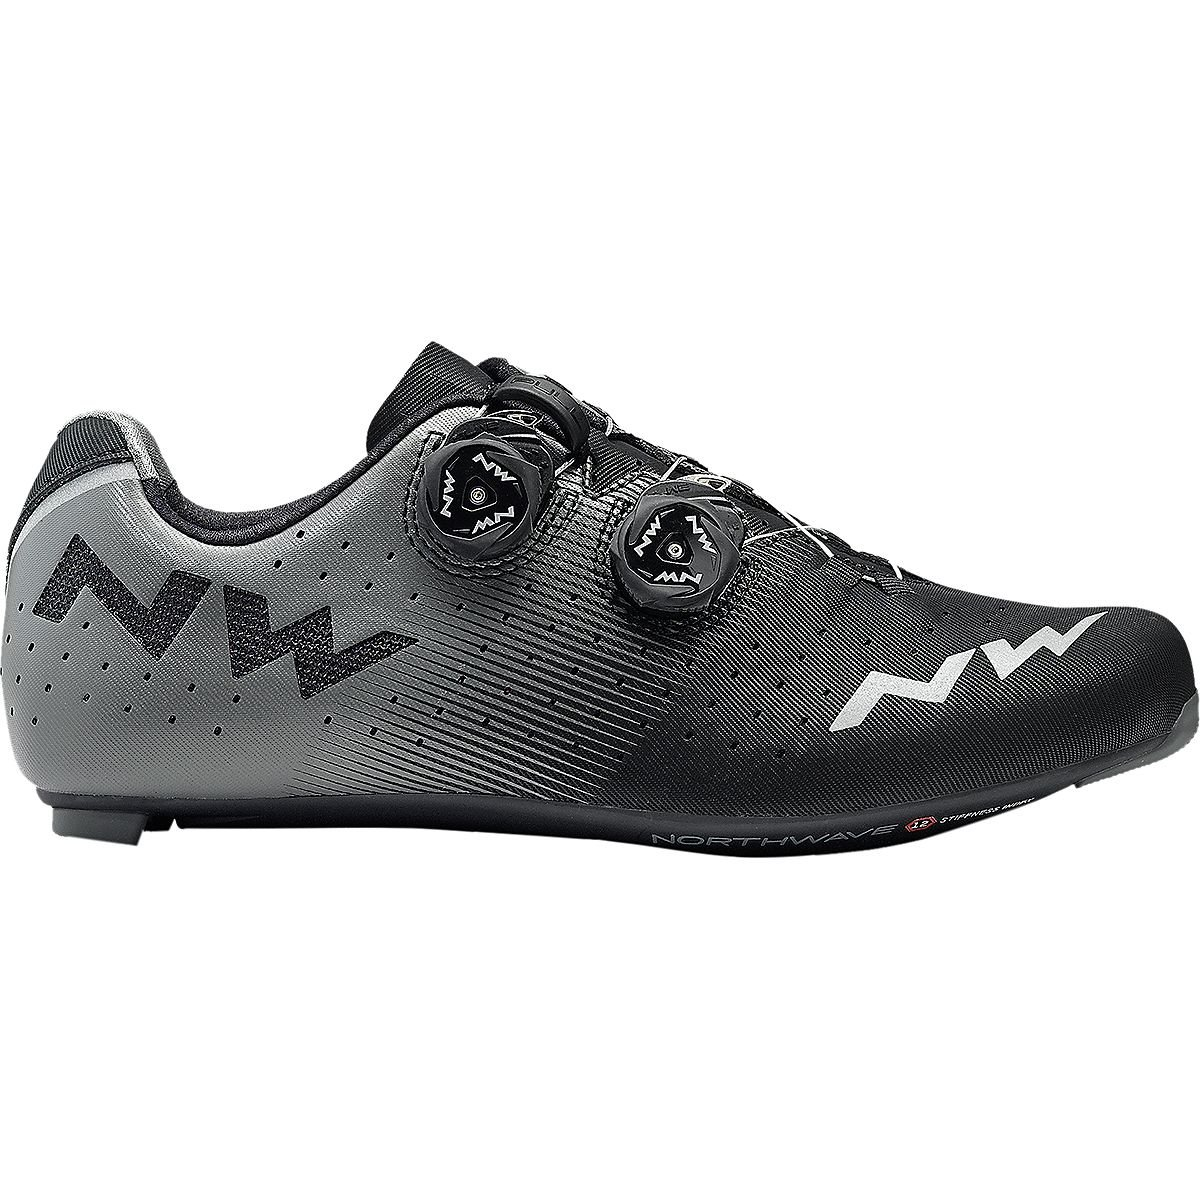 ノースウェーブRevolution Cycling Shoe – Men 's Black / Anthracite、40.0   B07BLTTJMW